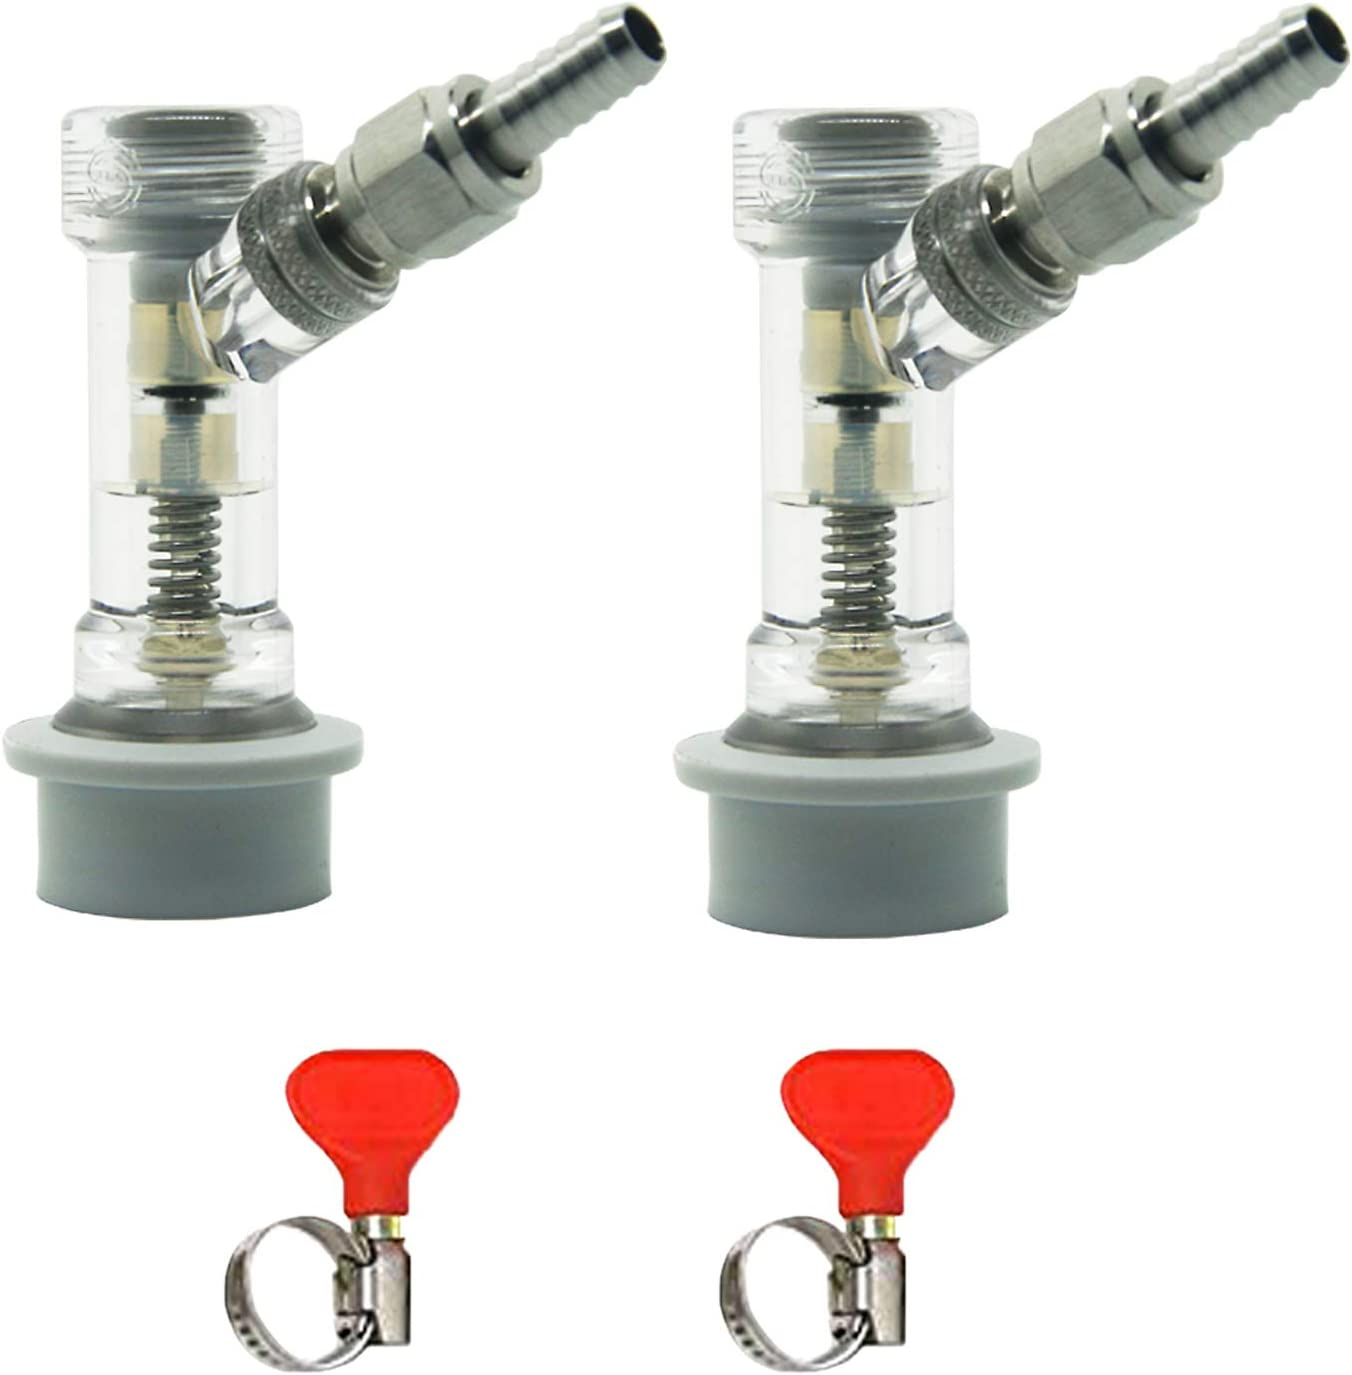 LUCKEG Check Valve Ball Lock Keg Disconnect Corny Keg Connector with Swivel Nuts and Worm Clamps for Homebrewing